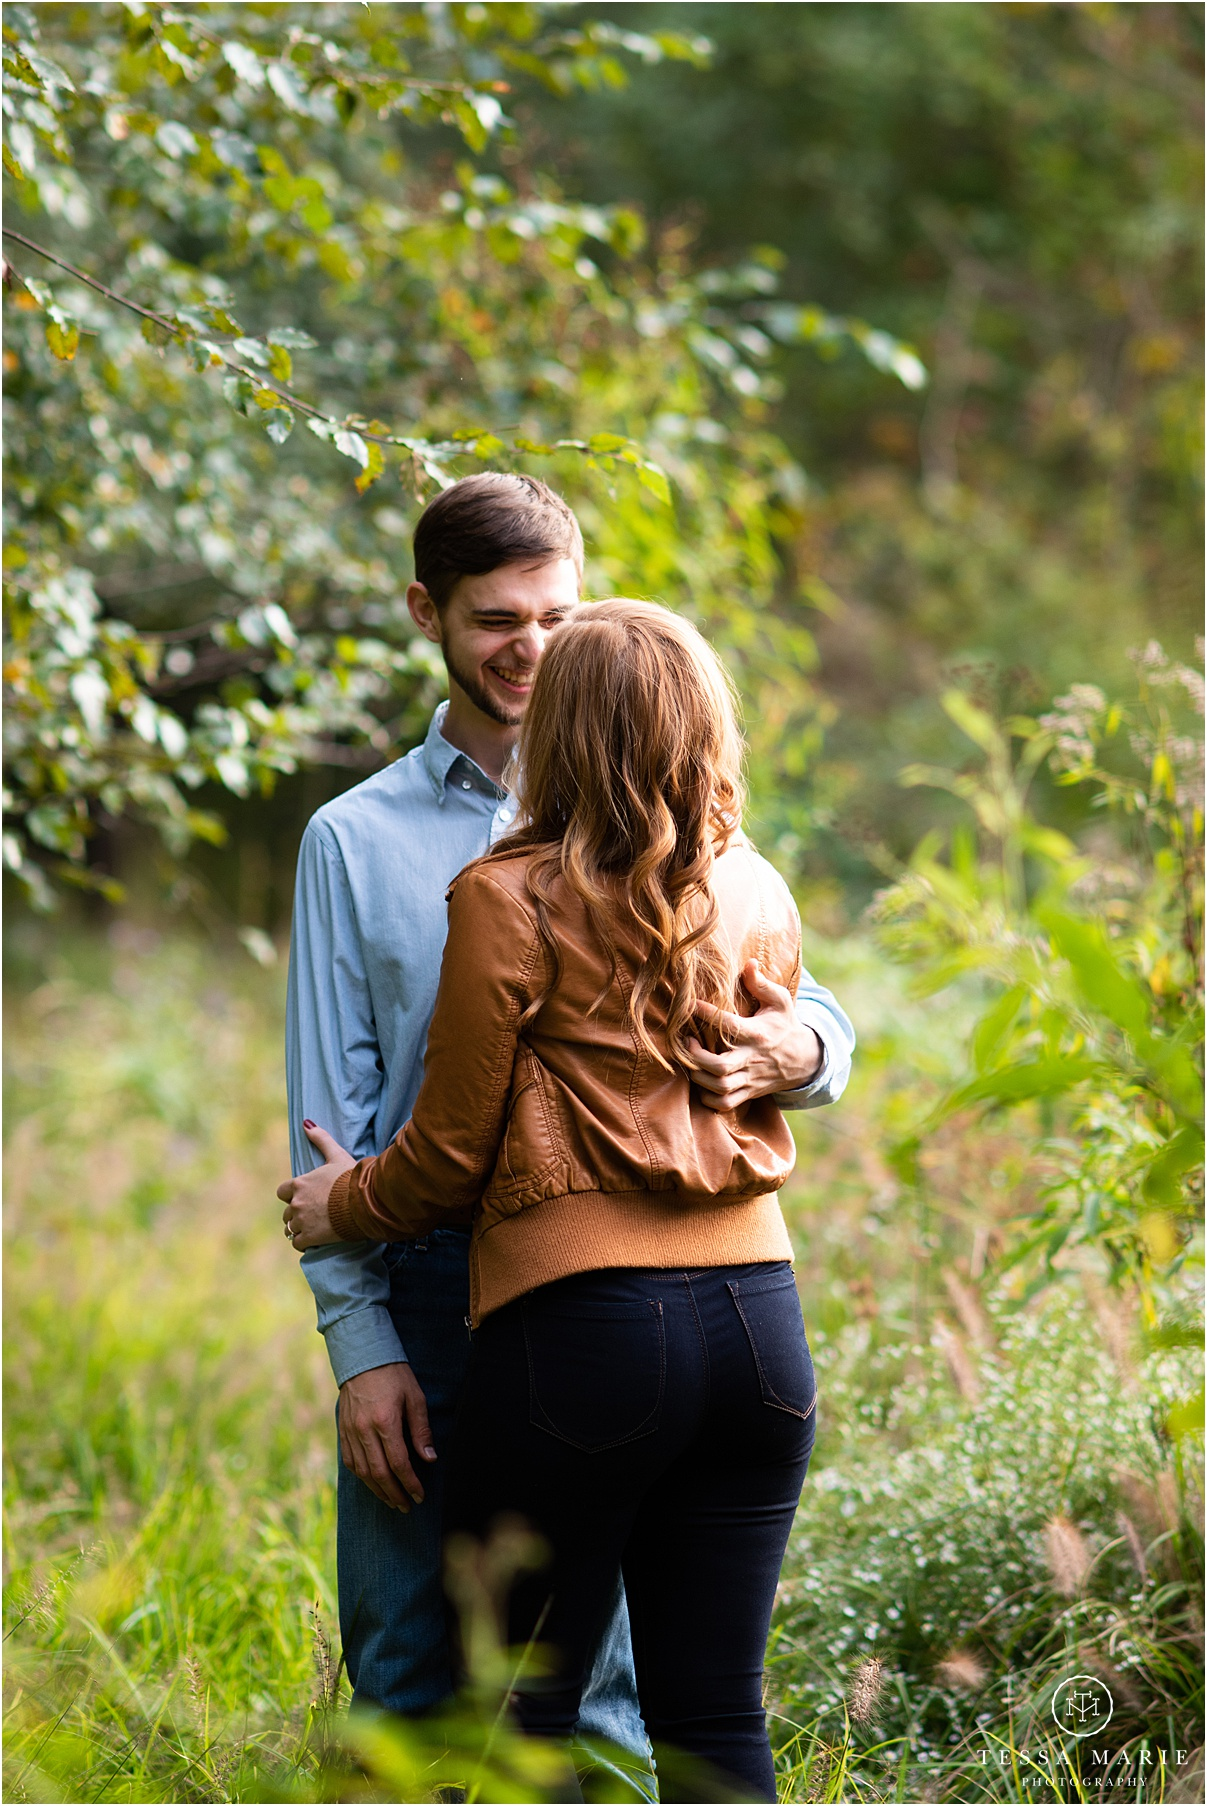 Tessa_marie_photography_wedding_photographer_engagement_pictures_river_engagement_0003.jpg